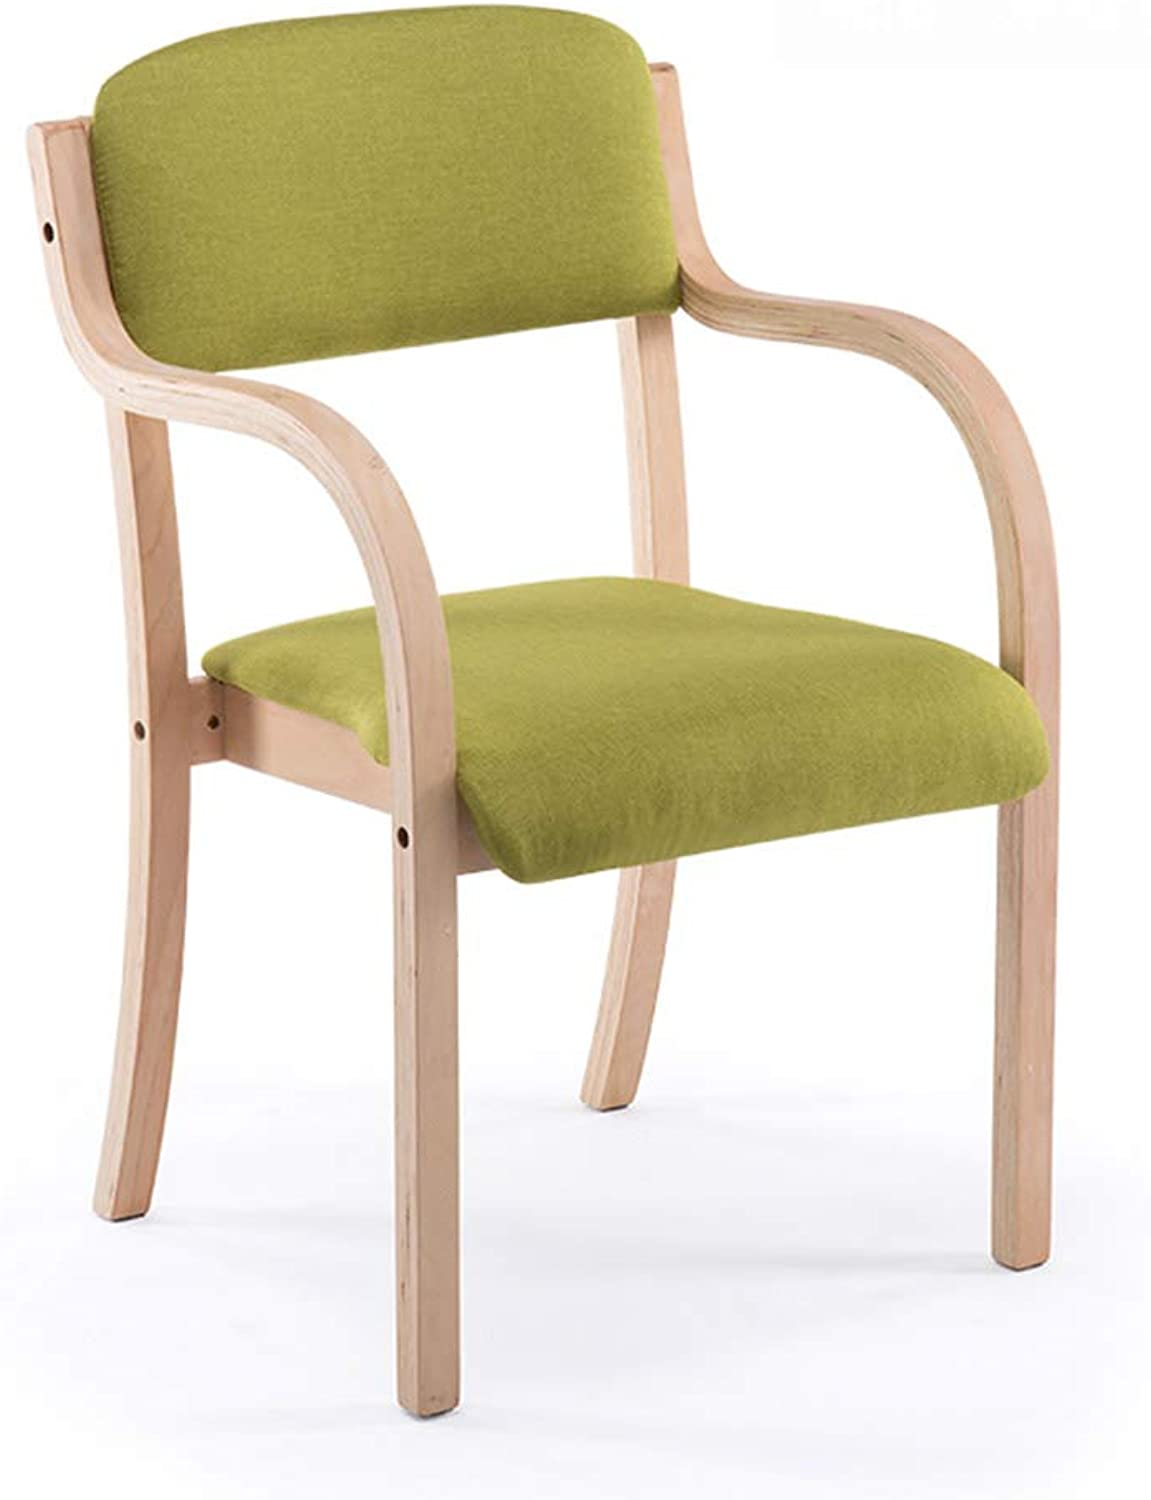 Modern Minimalist Home Curved Wood Restaurant Leisure Chair Solid Wood Back Desk Chair (color   A)